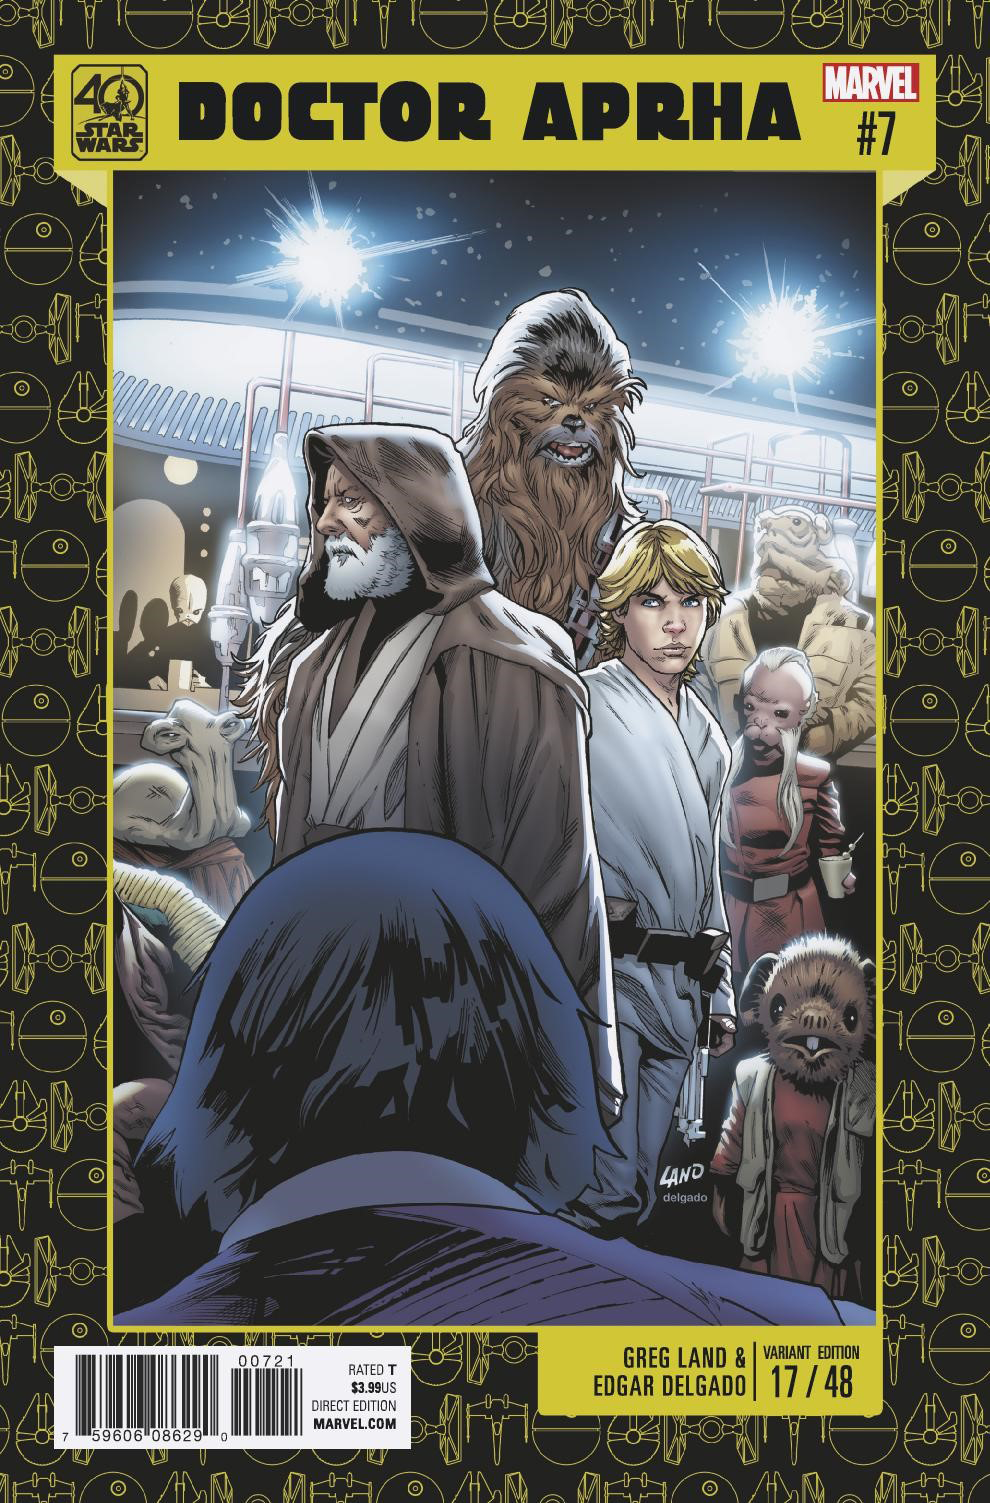 Doctor Aphra #7 (Greg Land 40th Anniversary Variant Cover) (31.01.2017)